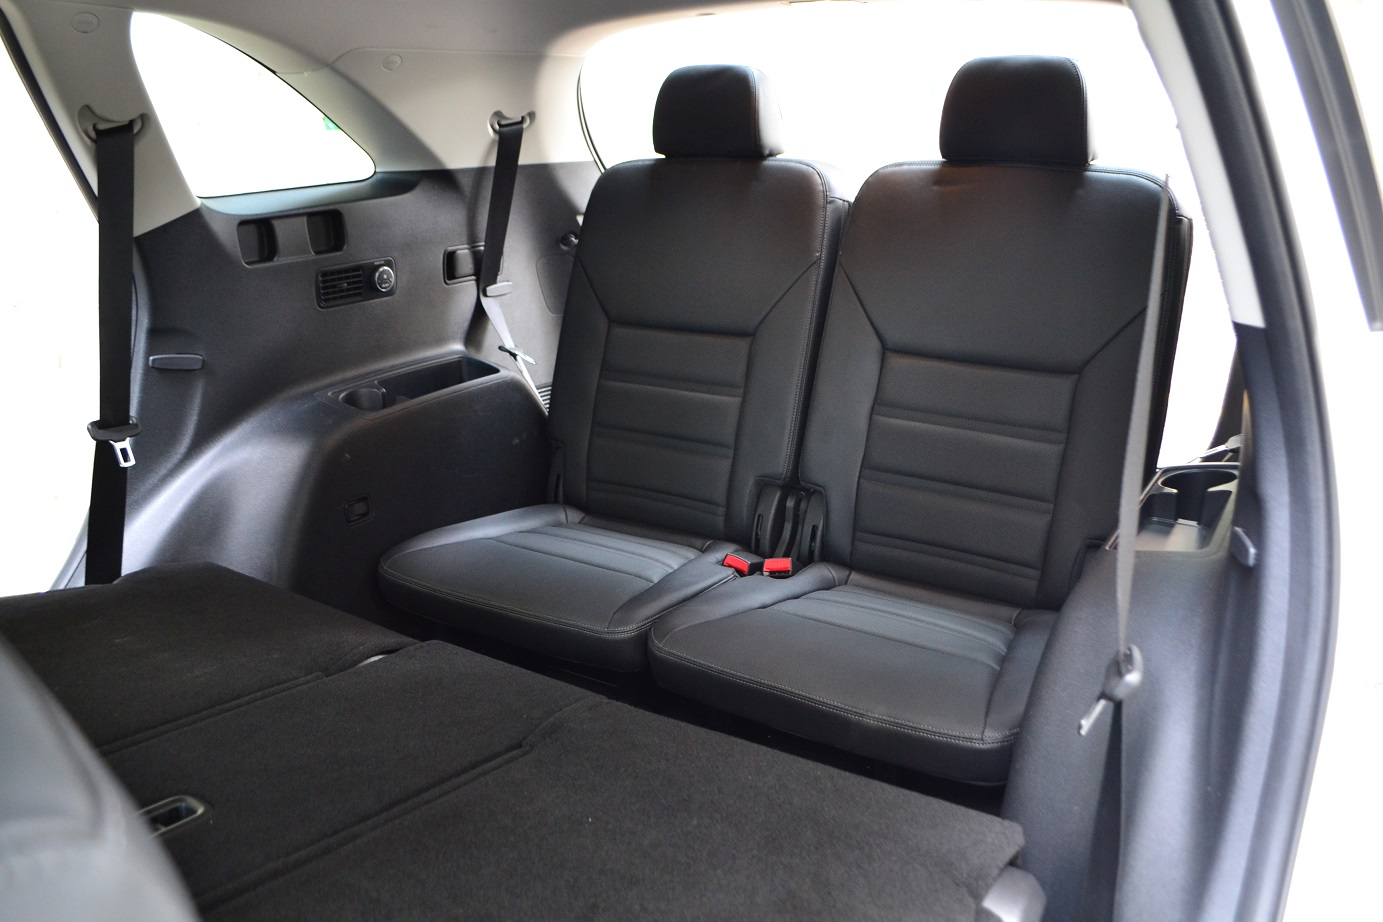 The Kia Grand Carnival And Sorento Diesel People Movers Wiring Harness Kit For 2016 In Addition 2013 Youll Also Find Usb Charging Ports Both Vehicles Center But Has An Additional 12v Port Here